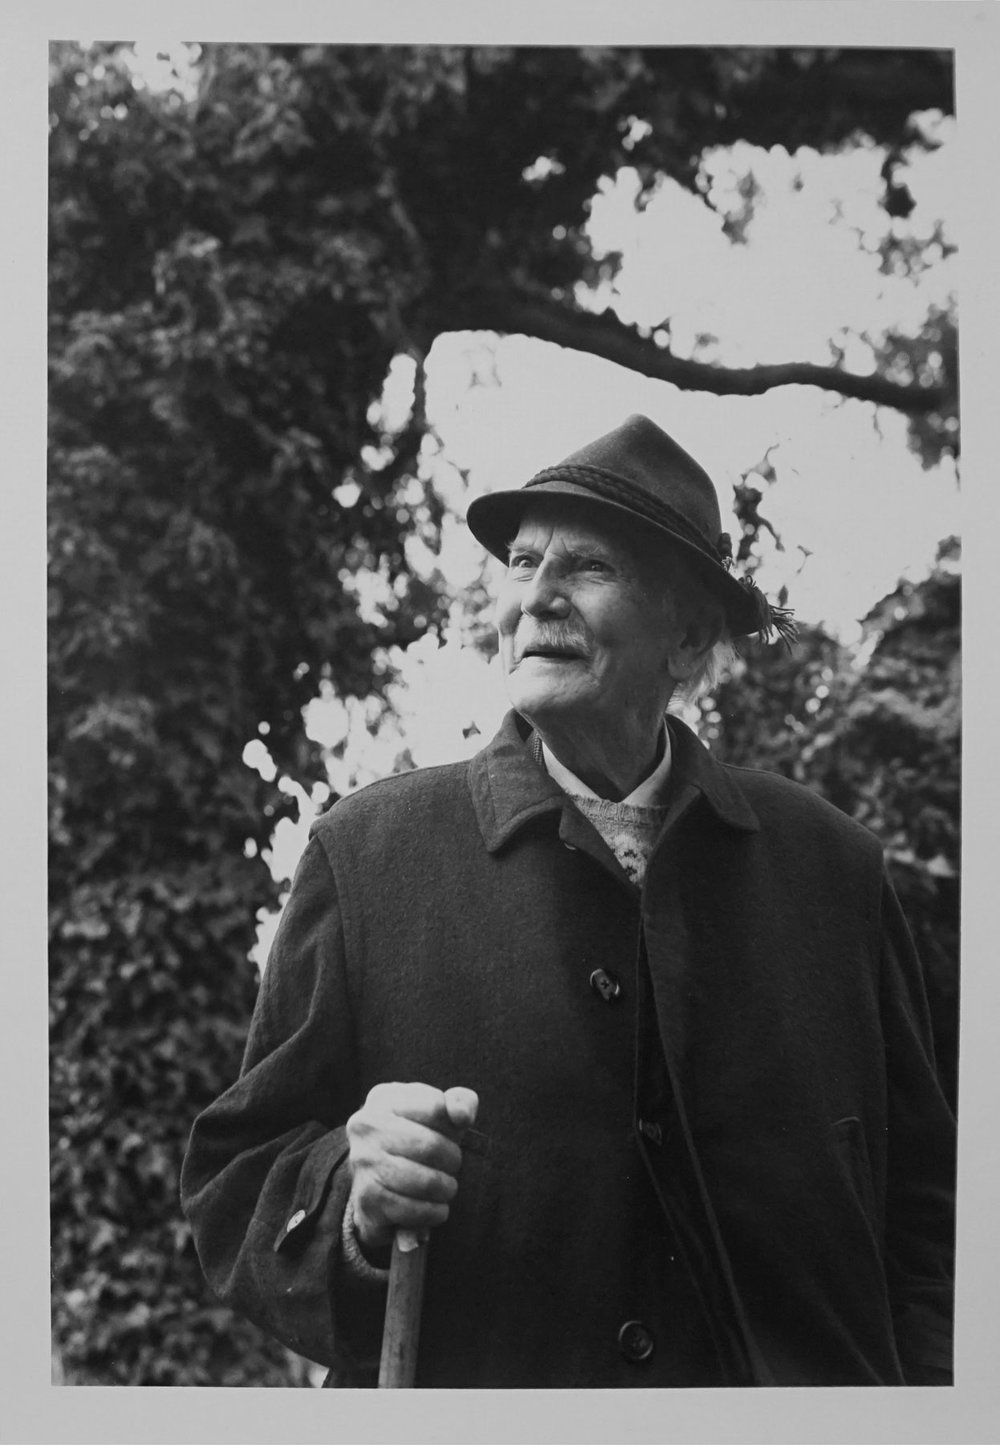 63. Richard Woldendorp, 'Richard St Barbe Baker, Hazelmere WA', taken and printed in c.1979, Vintage Print